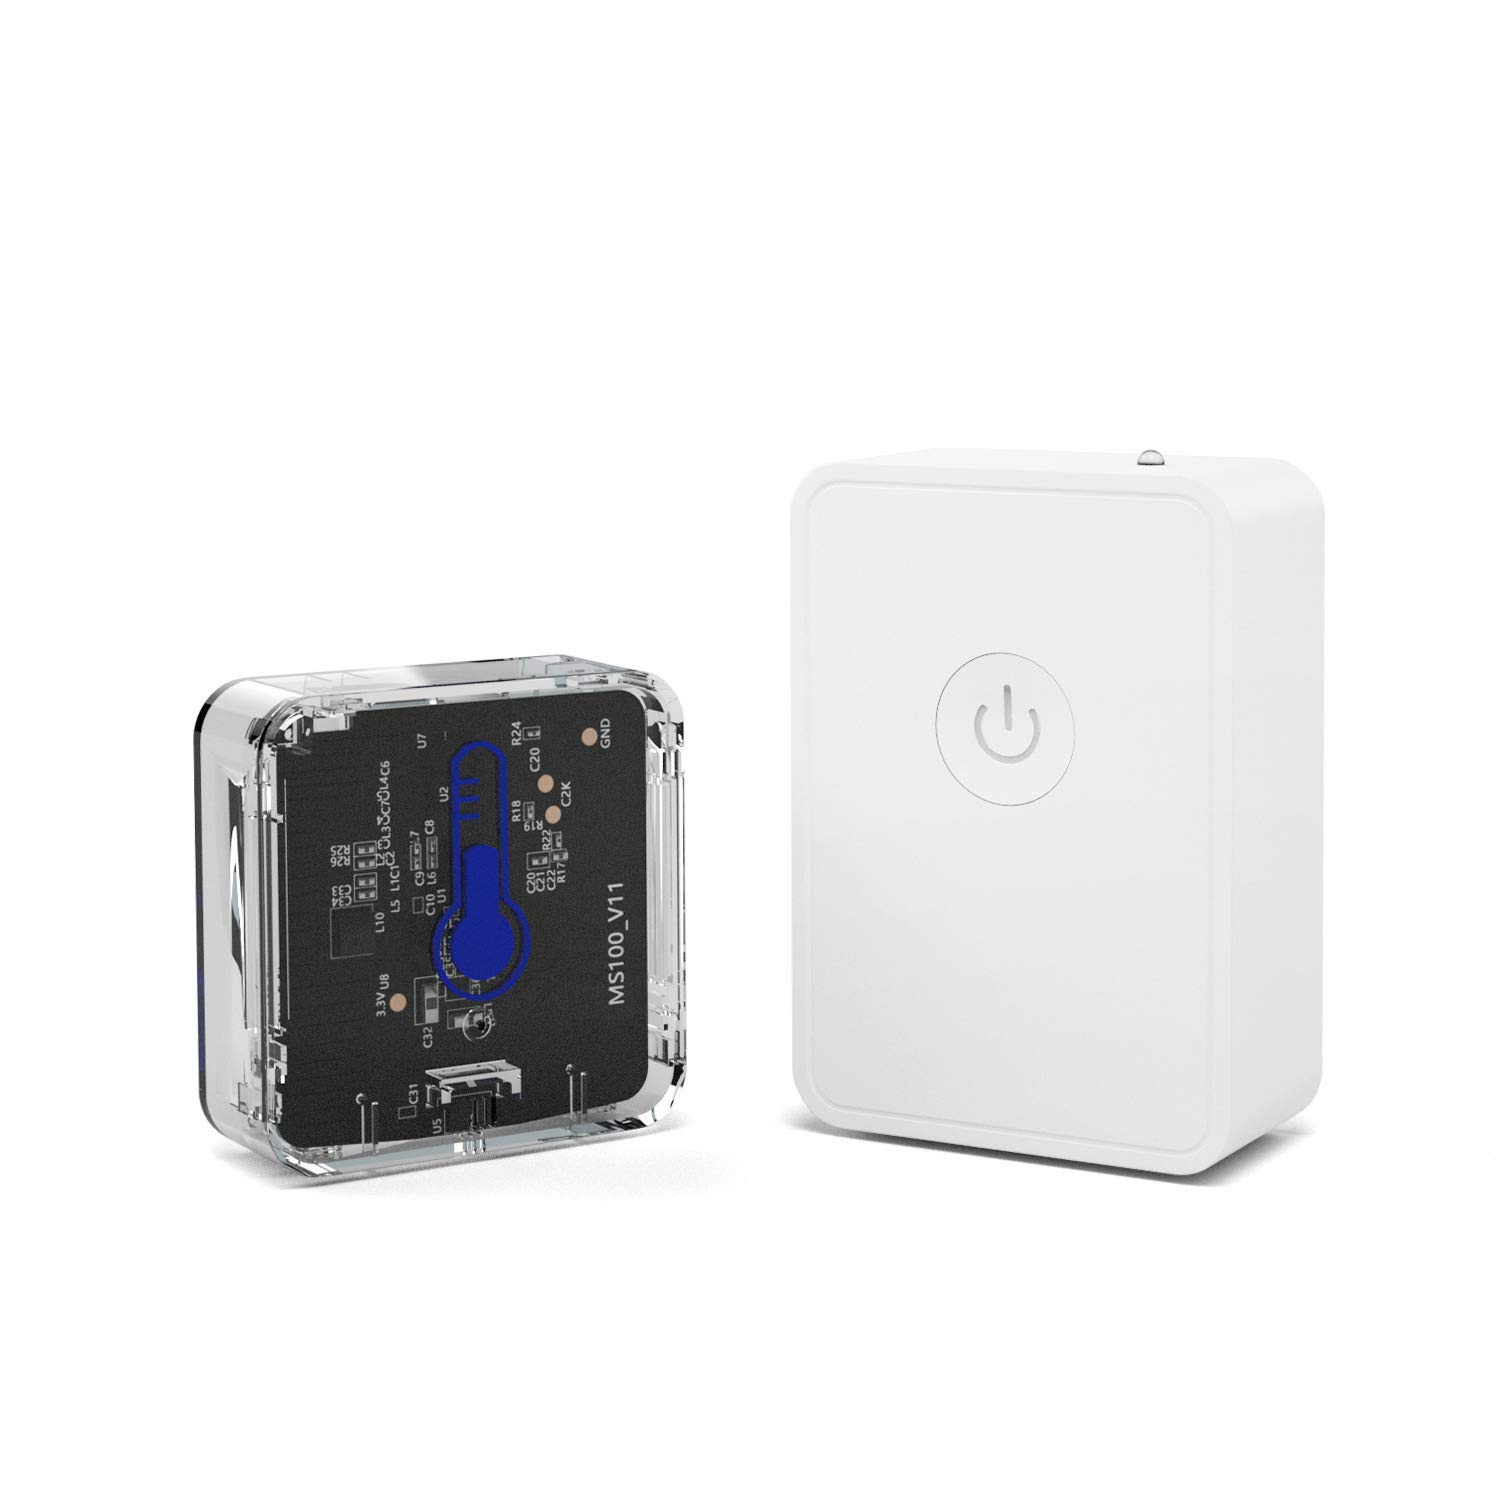 meross Wireless Temperature and Humidity Monitor Sensor with Alerts Thermometer & Hygrometer, Support IFTTT, Perfect for Your House Wine Living Room Baby Room Pet (Smart Hub Included)